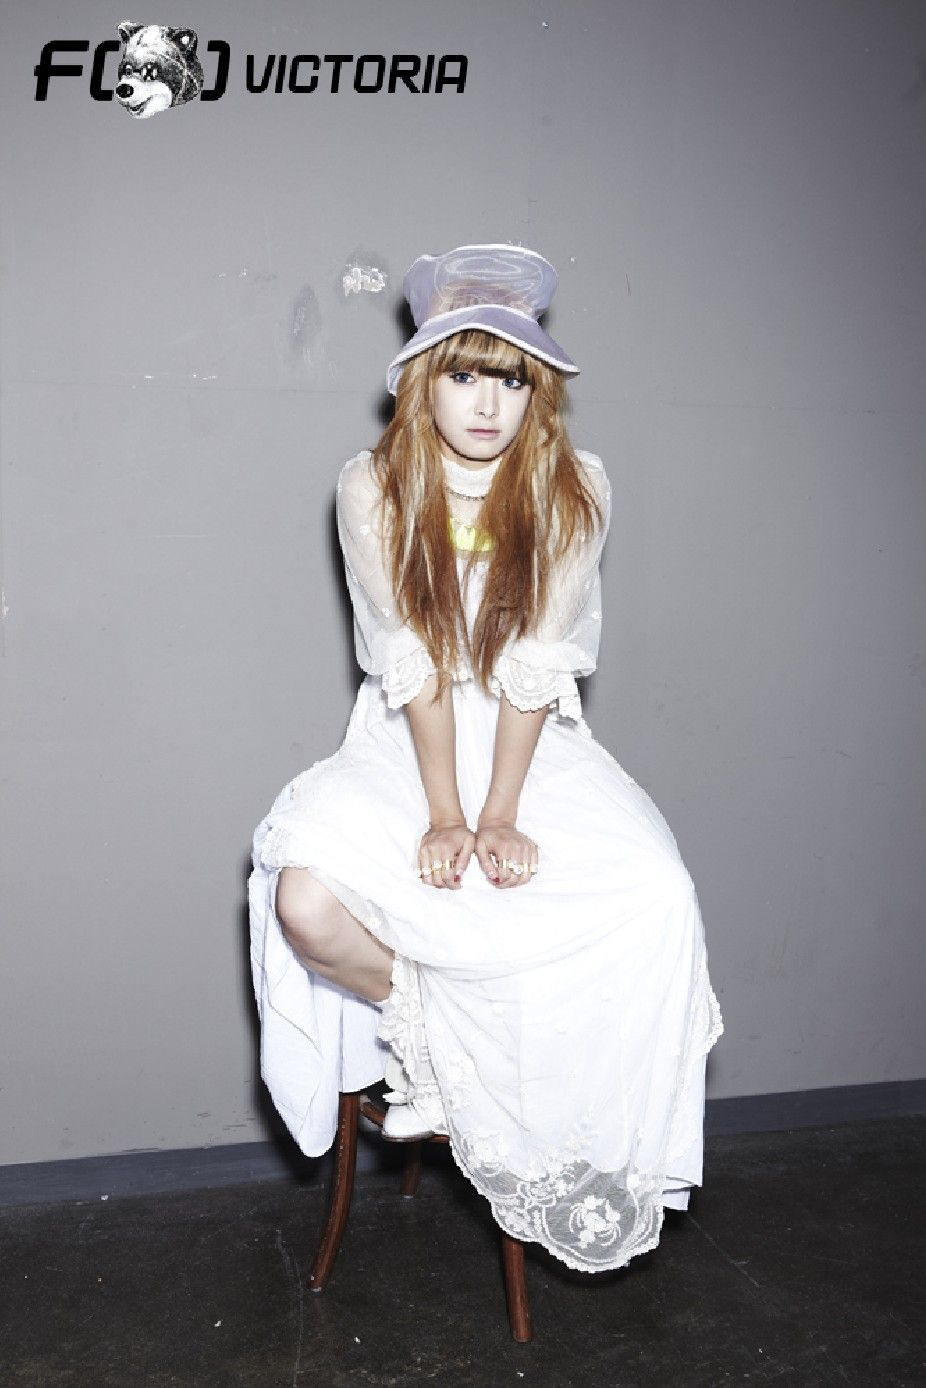 F(x) Electric Shock Victoria teaser photo.png